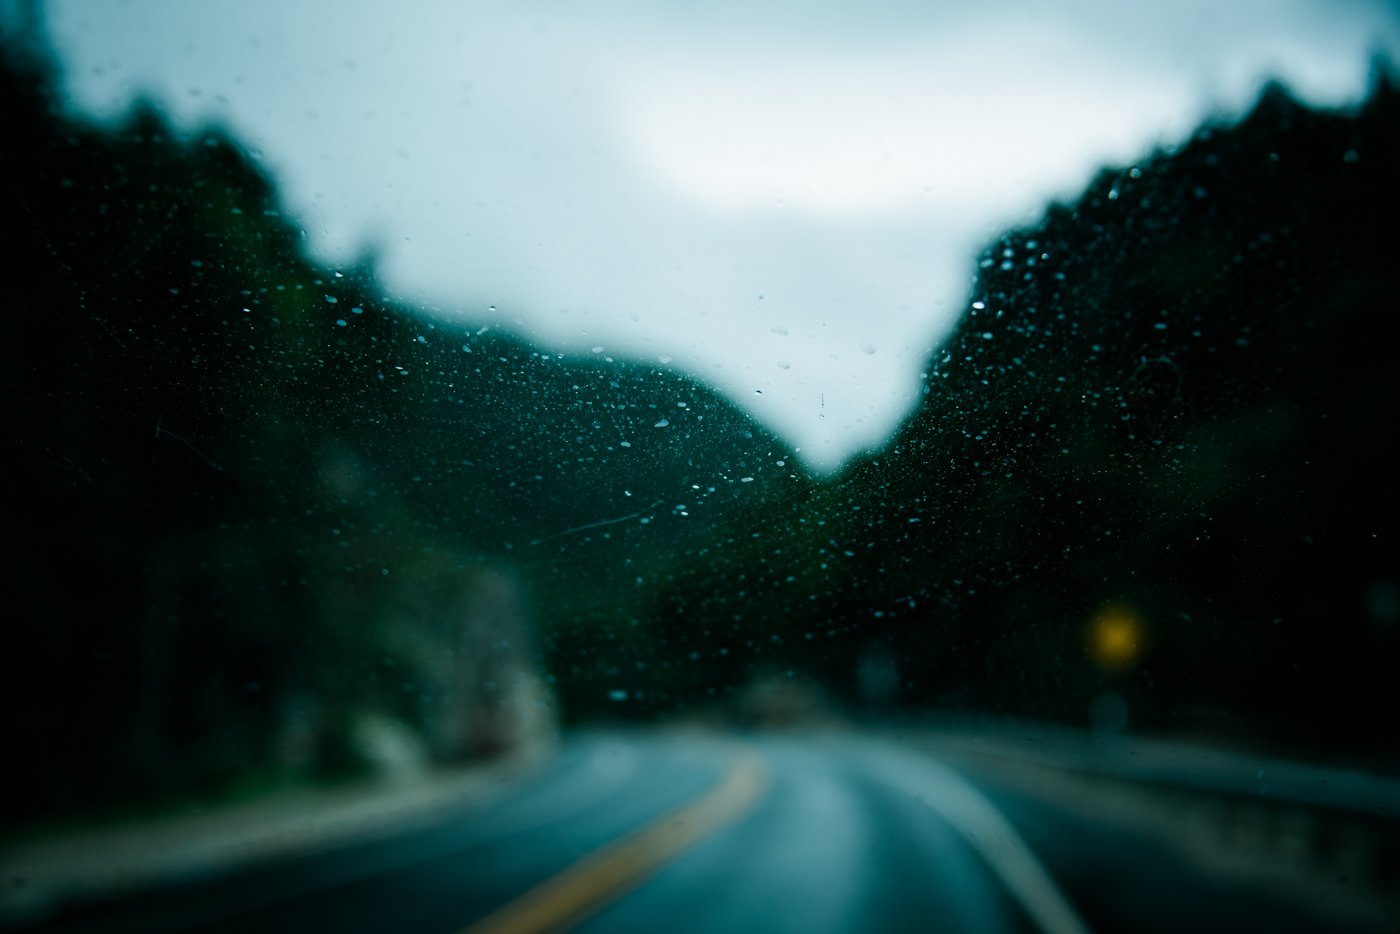 driving on the kancamagus highway through the white mountains in new hampshire, photographed by jamie bannon photography.